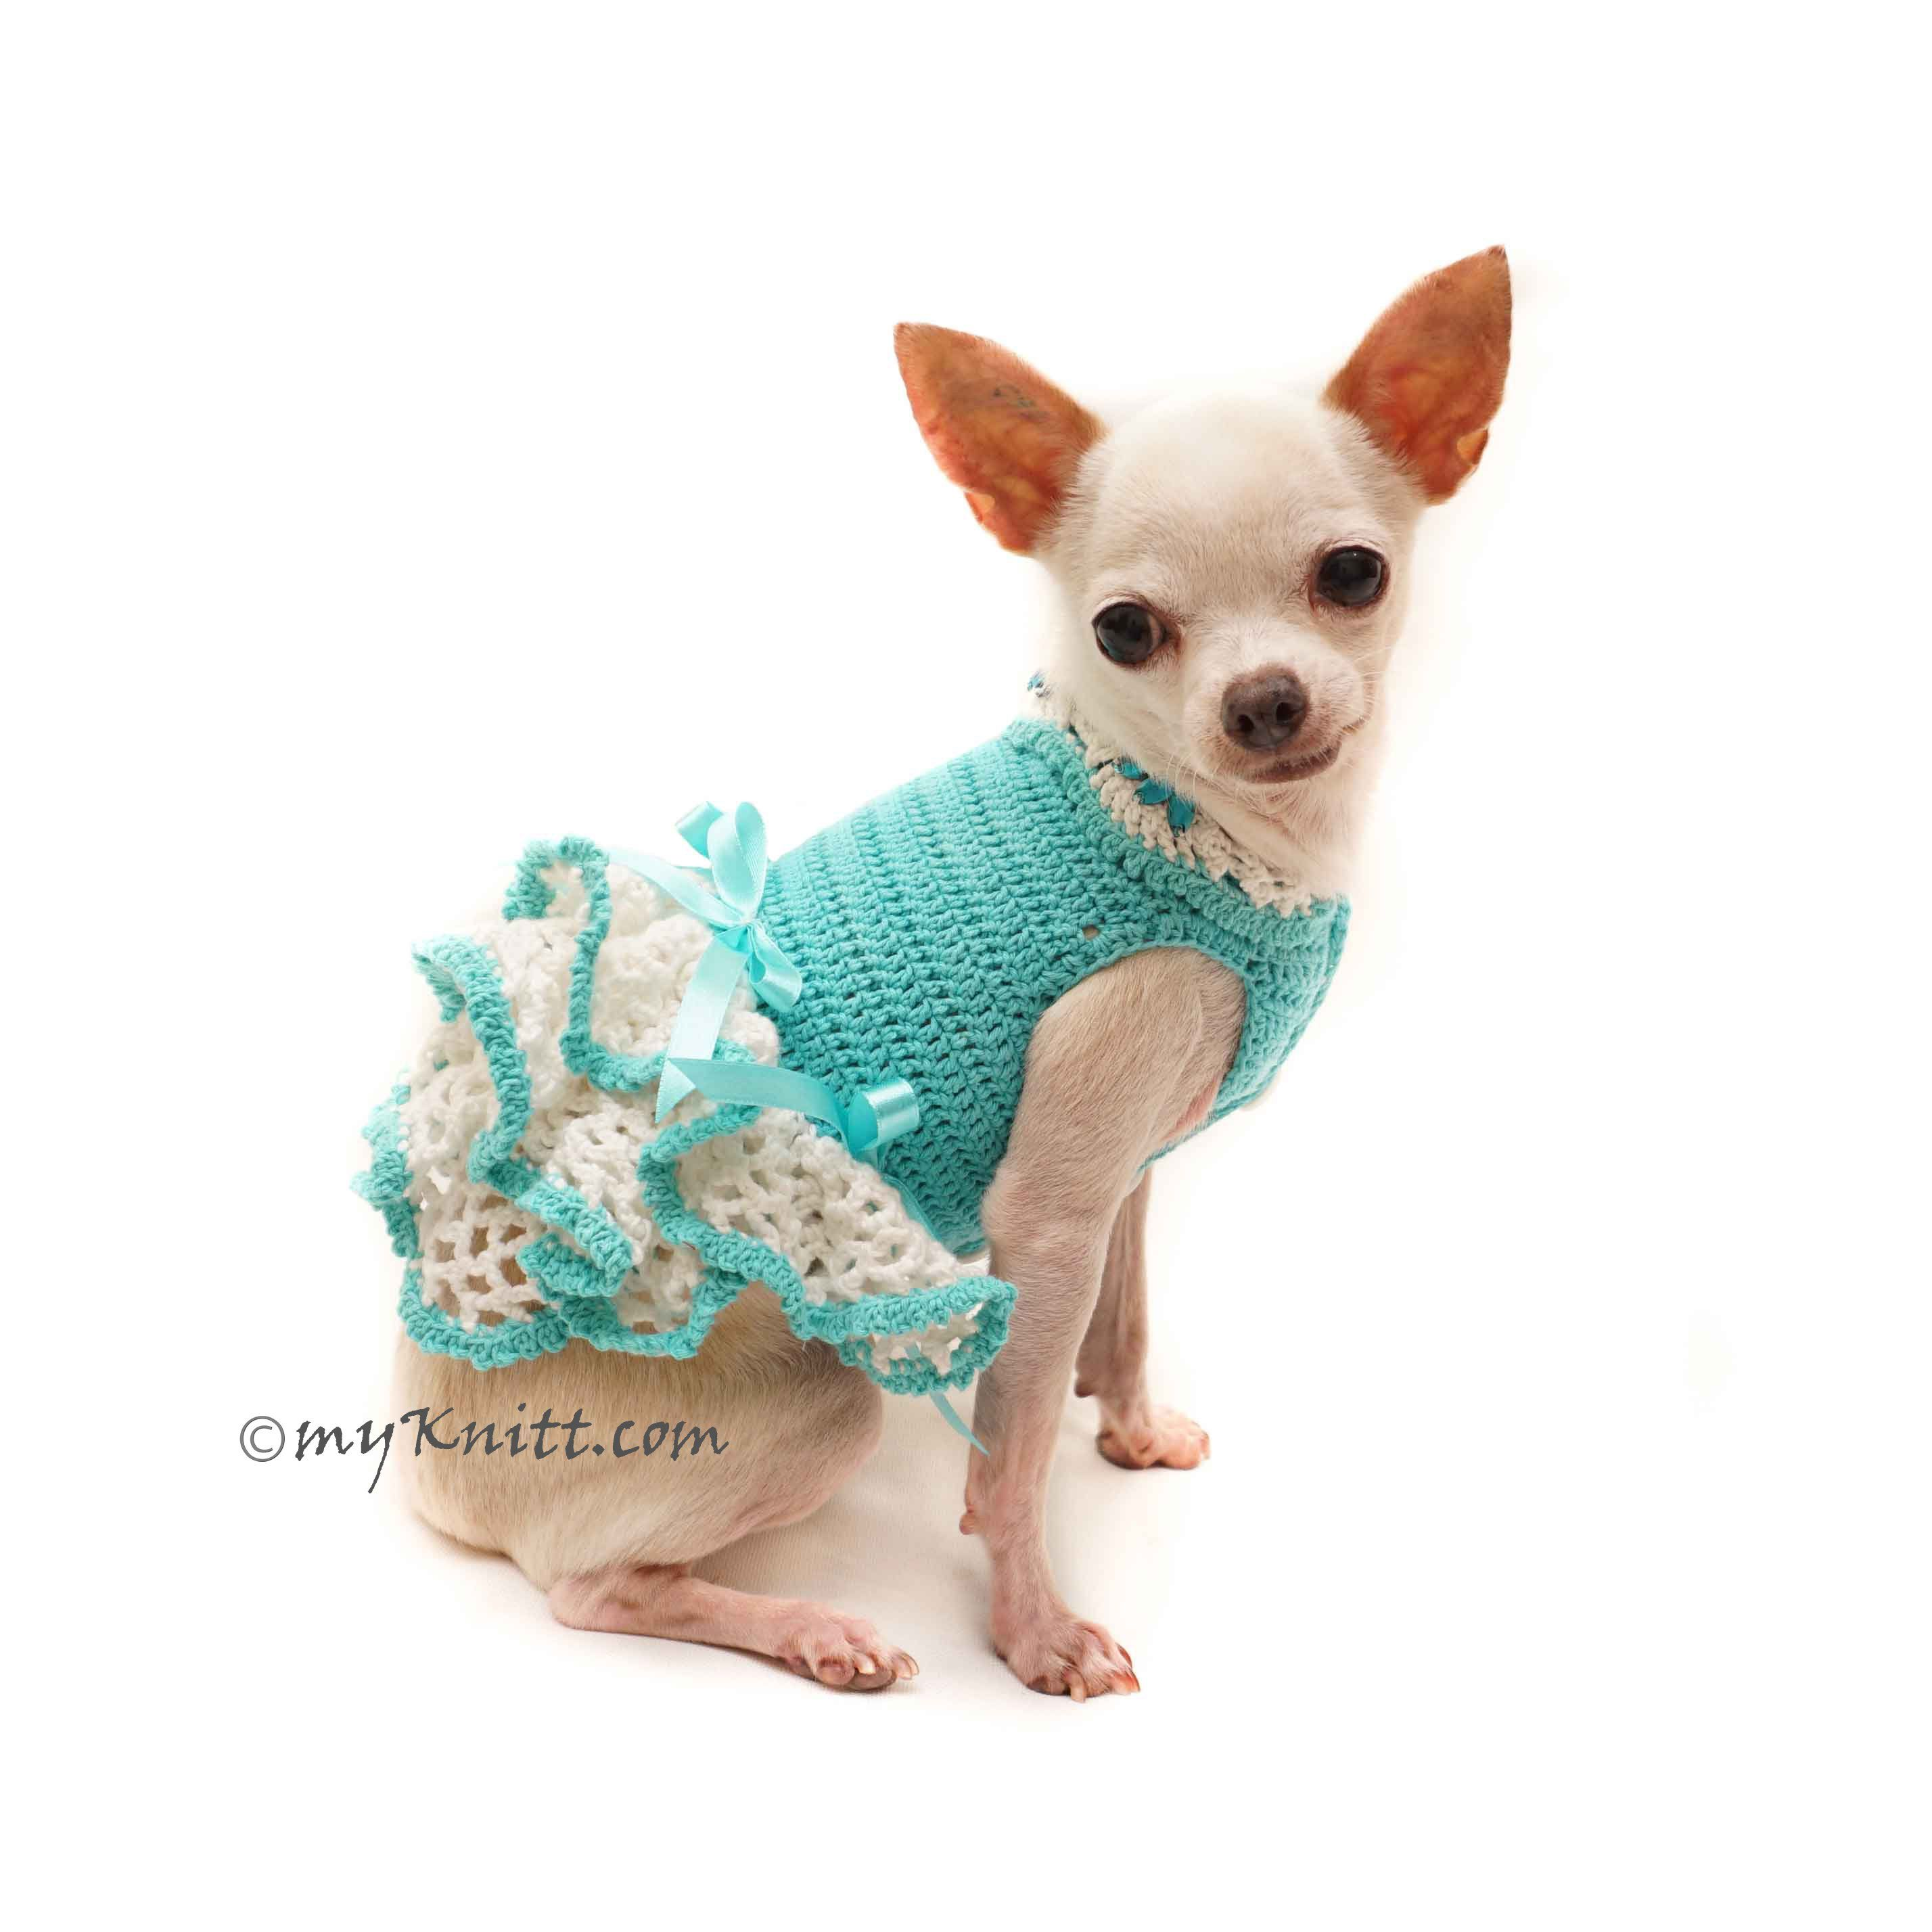 6d52f0cc1da5 Teal Chihuahua Clothes Dress, Custom Dog Clothes, Personalized Dog Clothes  Large DF126 by Myknitt